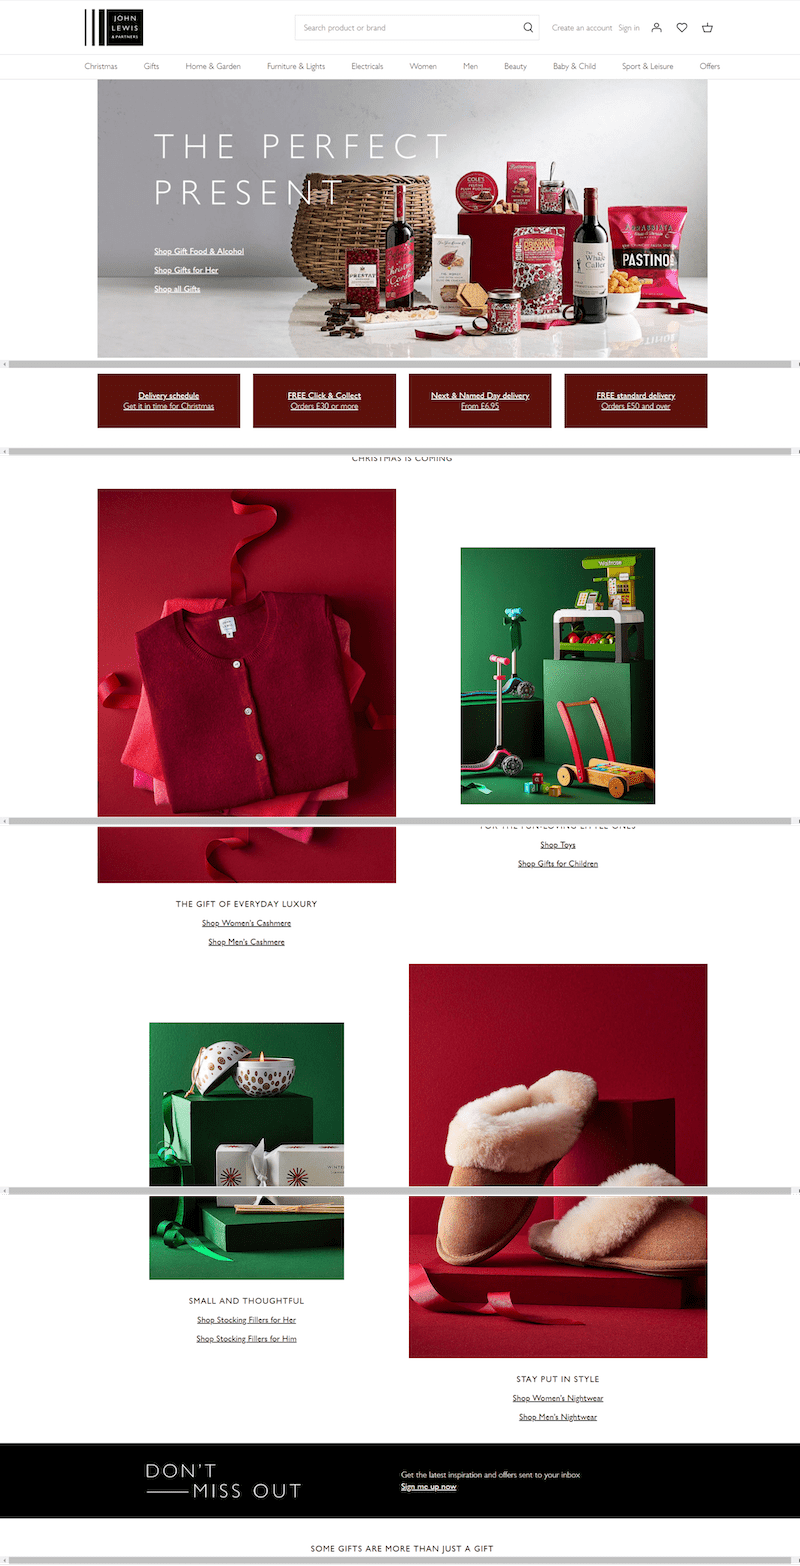 Holiday-ready web design UX example by John-Lewis